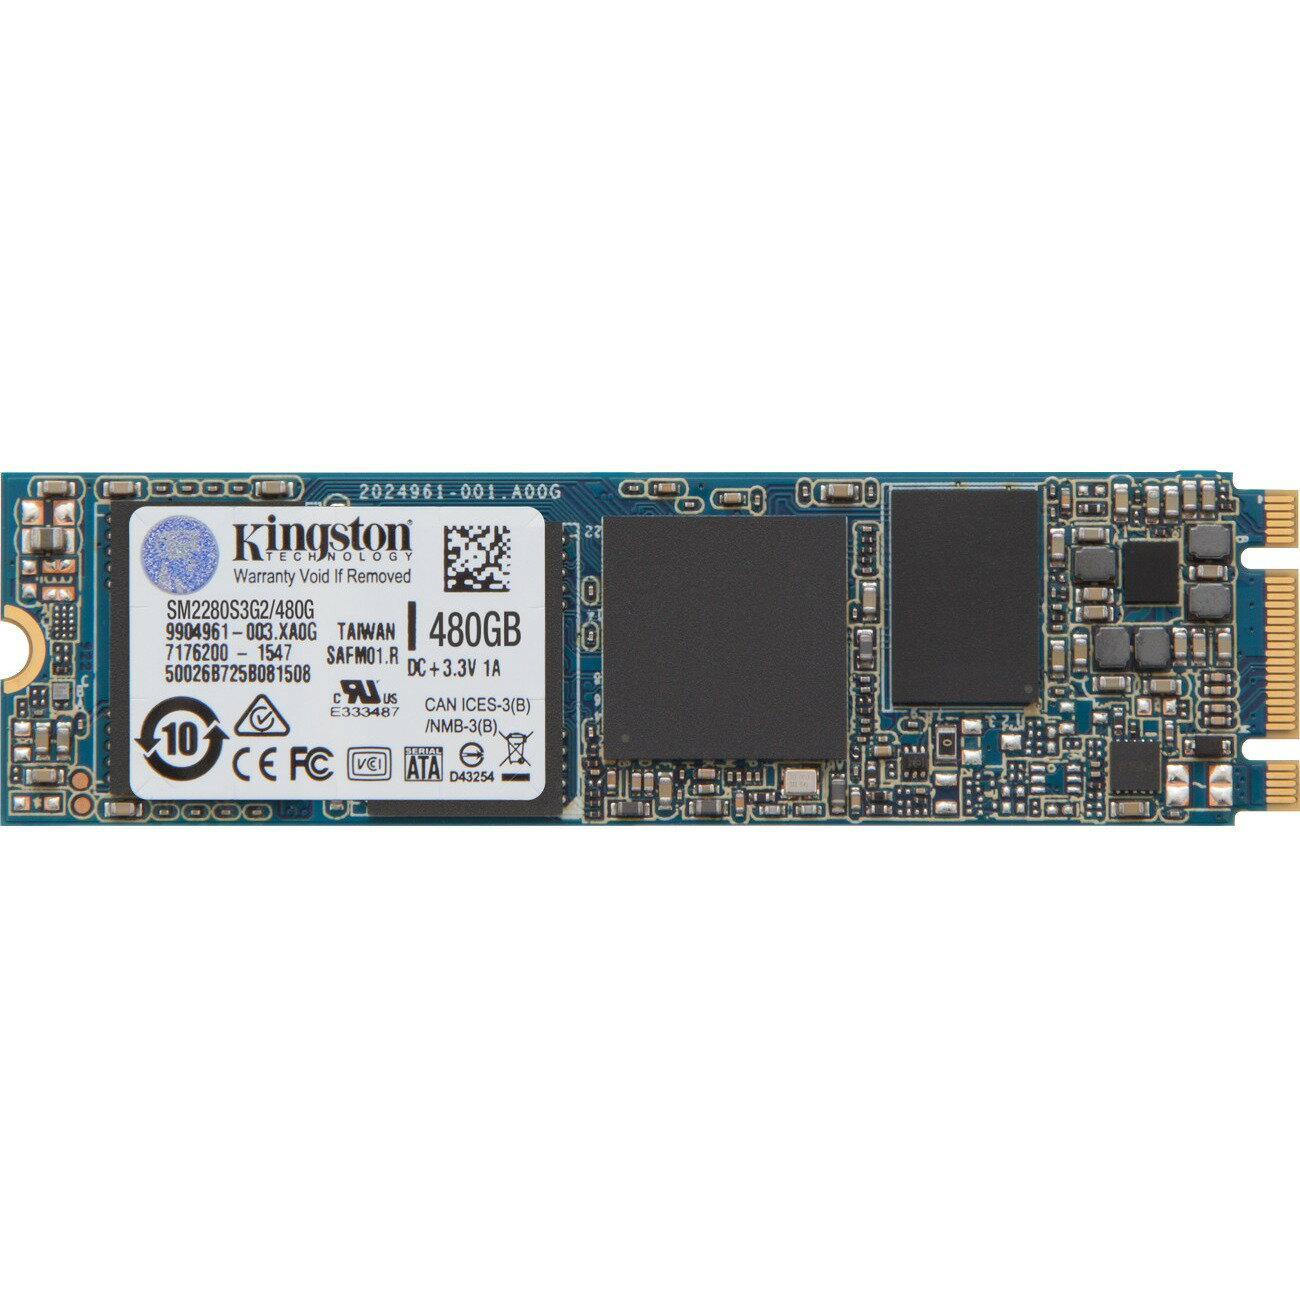 Kingston SSD M.2 2280 480GB SSDNow SATA III G2 Internal Solid State Drive 550MB/s Maximum Read Transfer Rate 520MB/s Maximum Write Transfer Rate SM2280S3G2/480G 0